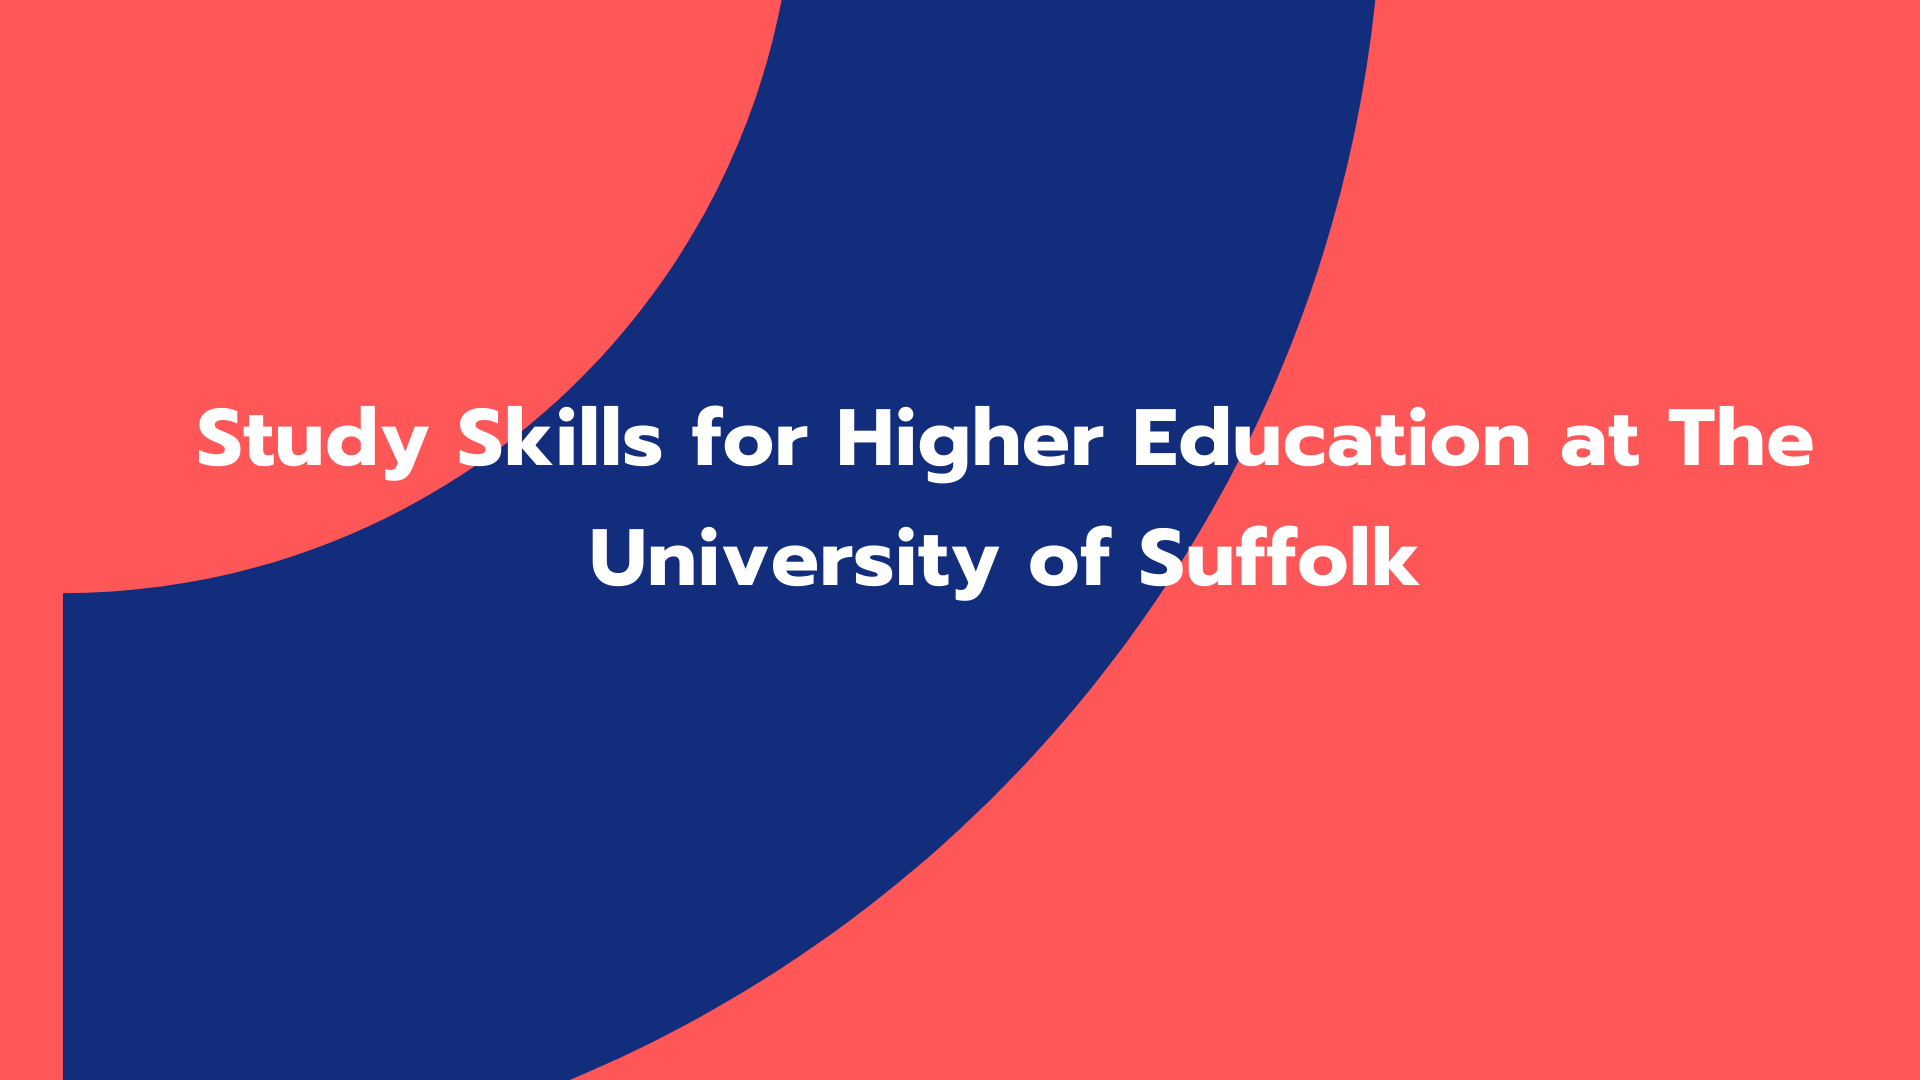 Study Skills for Higher Education at The University of Suffolk